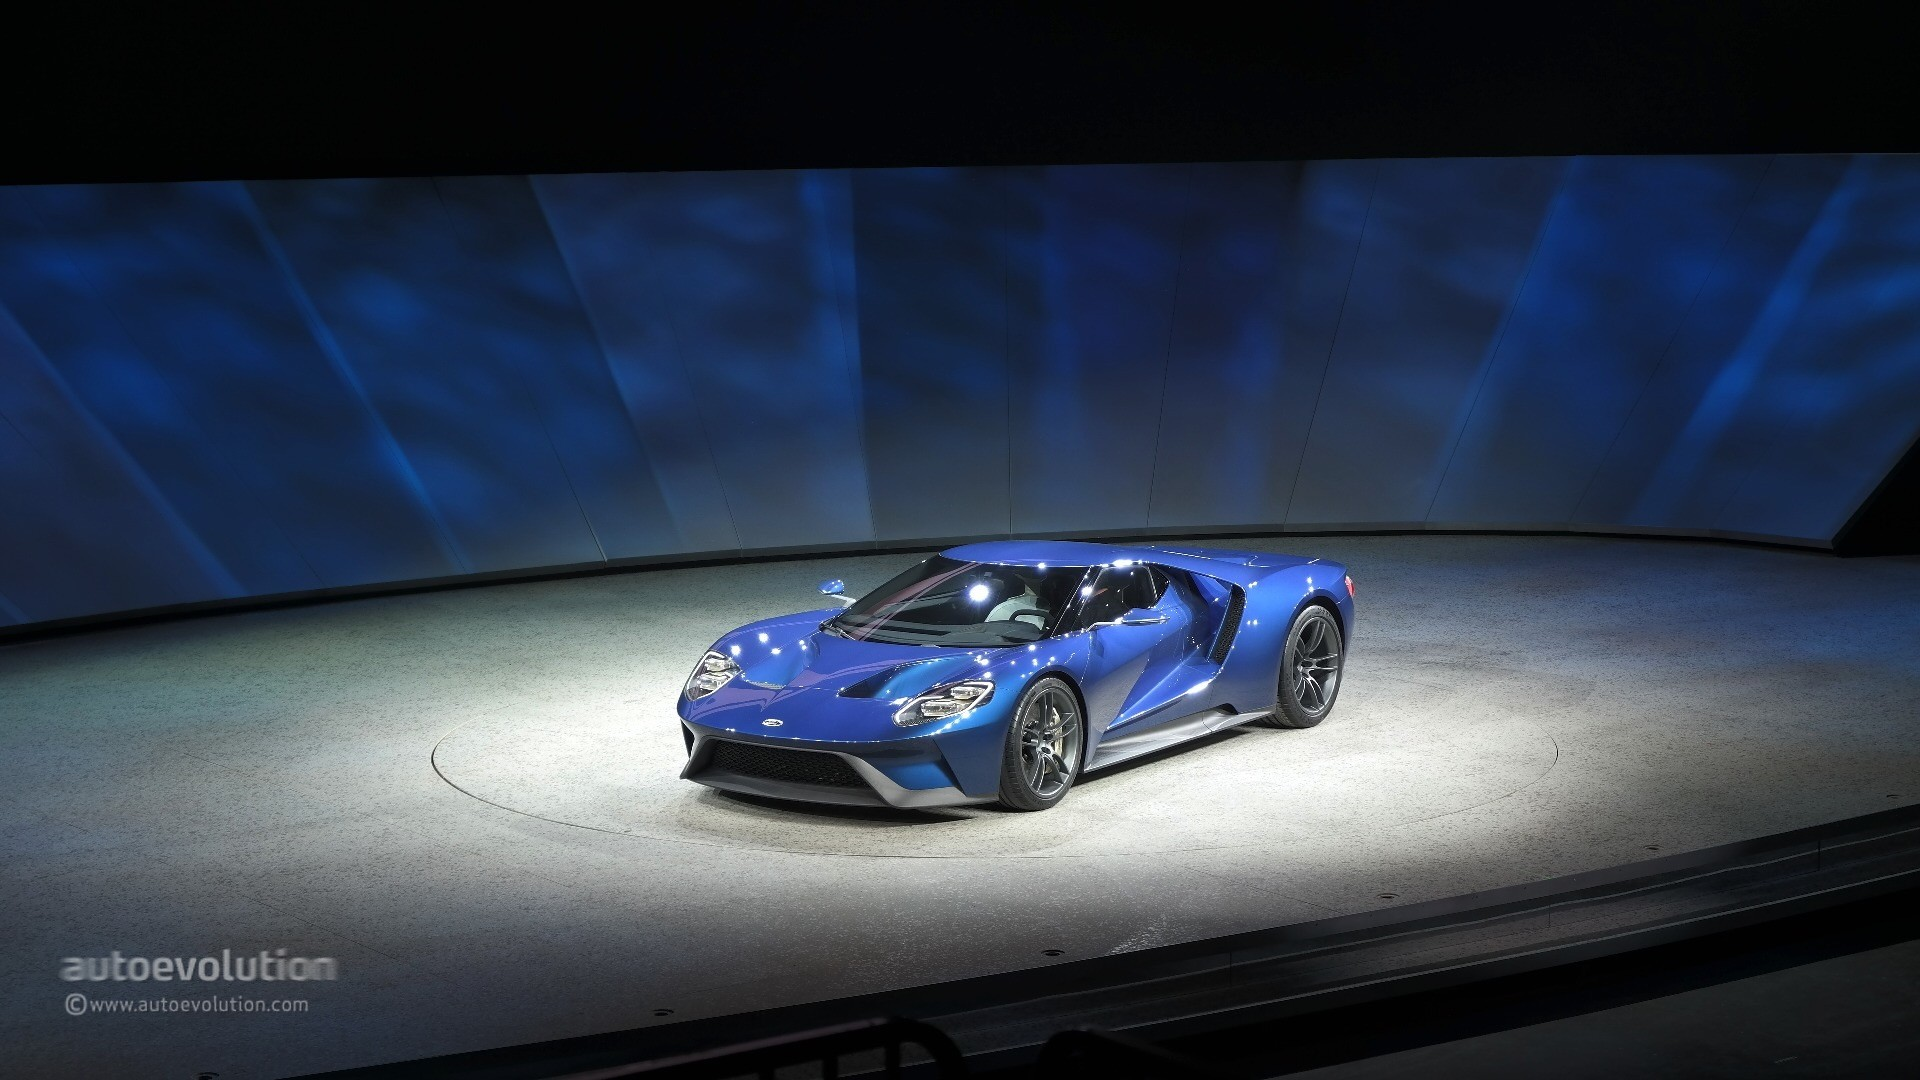 2016 ford gt sport blue wallpaper 2017 ford gt concept car beautiful -  All New Ford Gt Concept Live Photo 2015 Detroit Auto Show